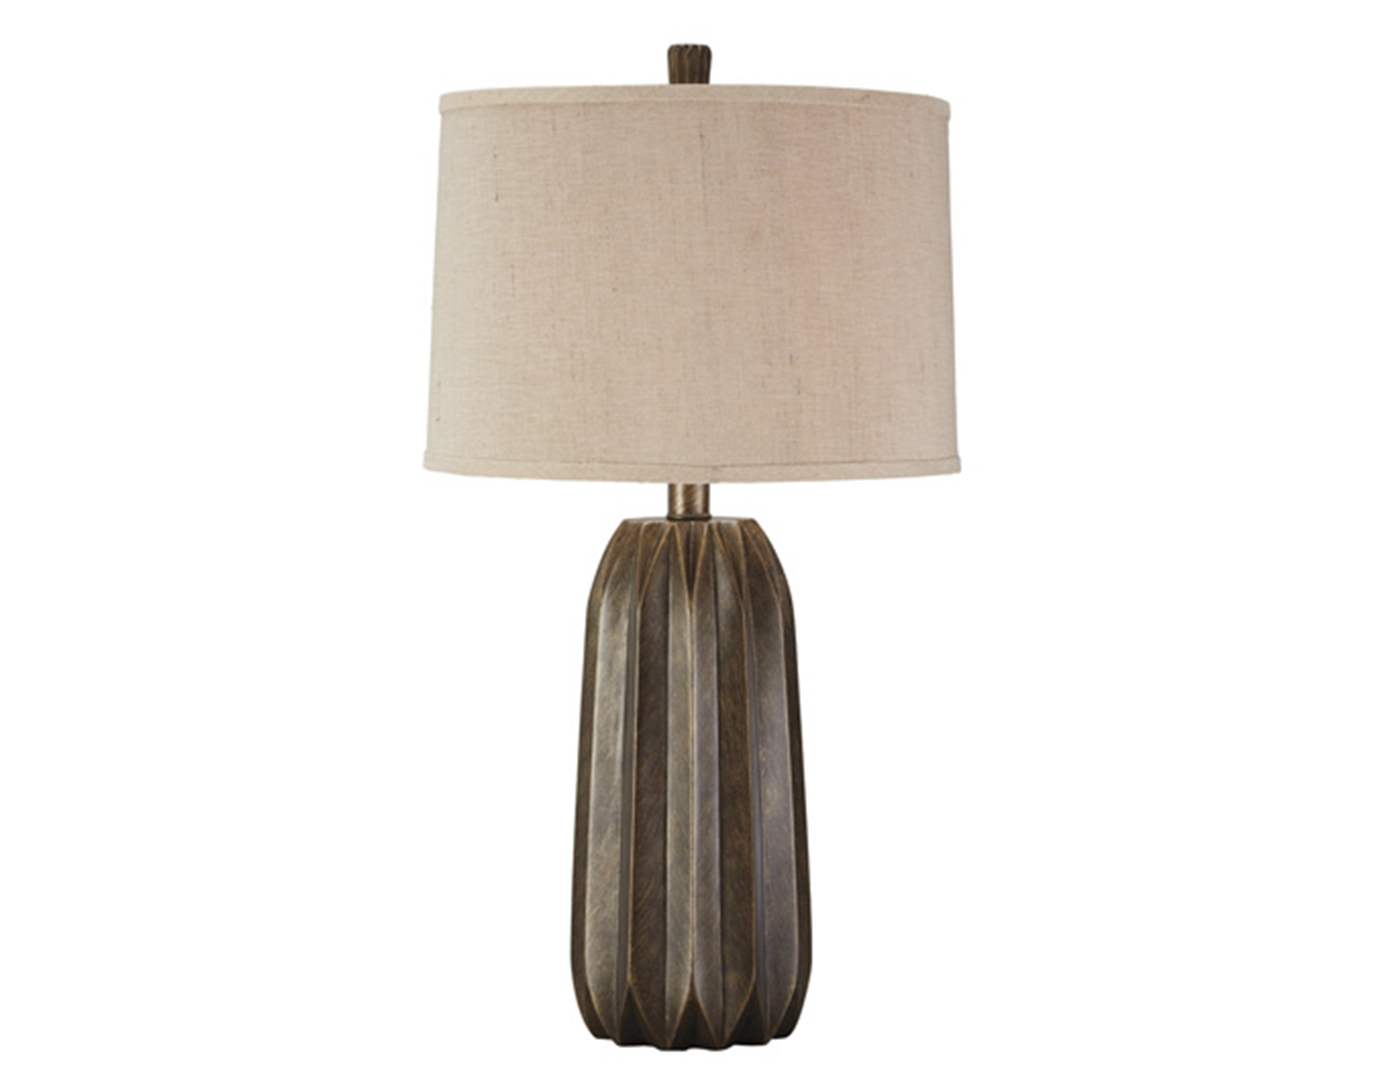 Brown and Brushed Gold Table Lamp